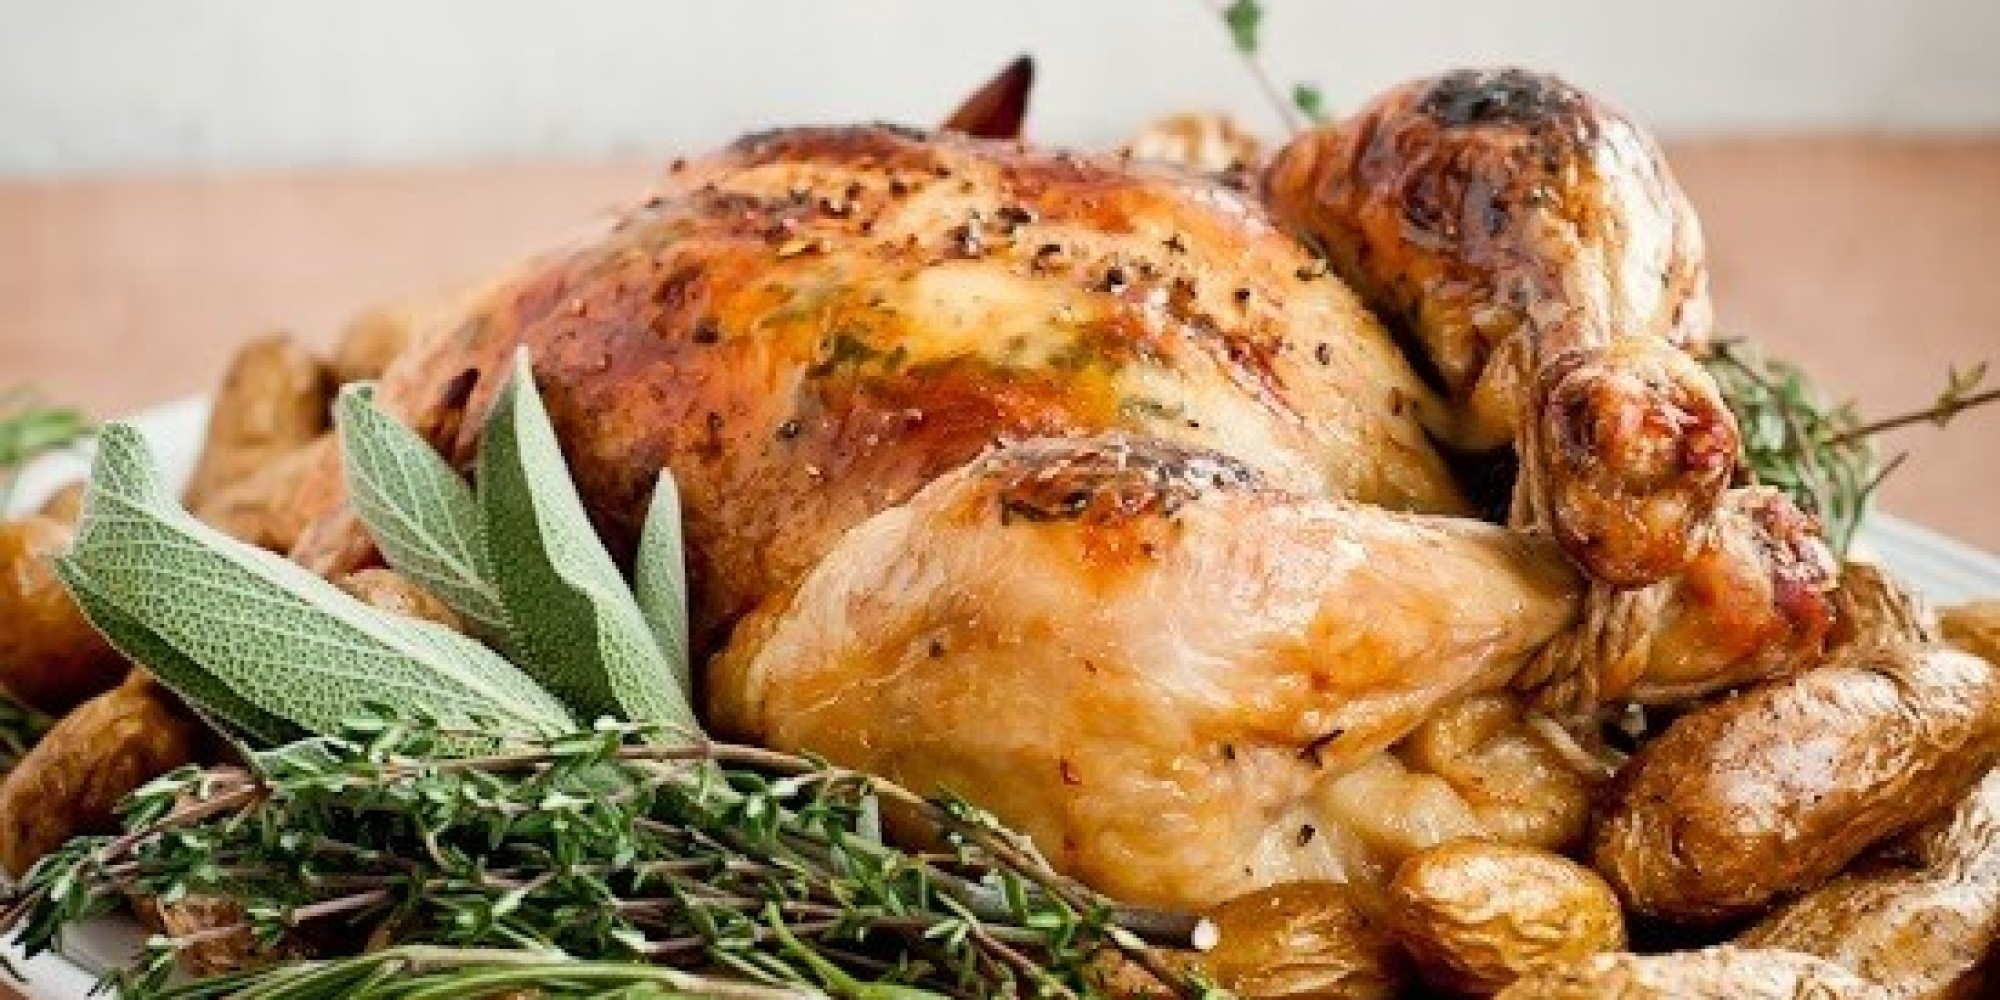 Roast Chicken Recipes For The Easiest Dinner Ever | The Huffington ...